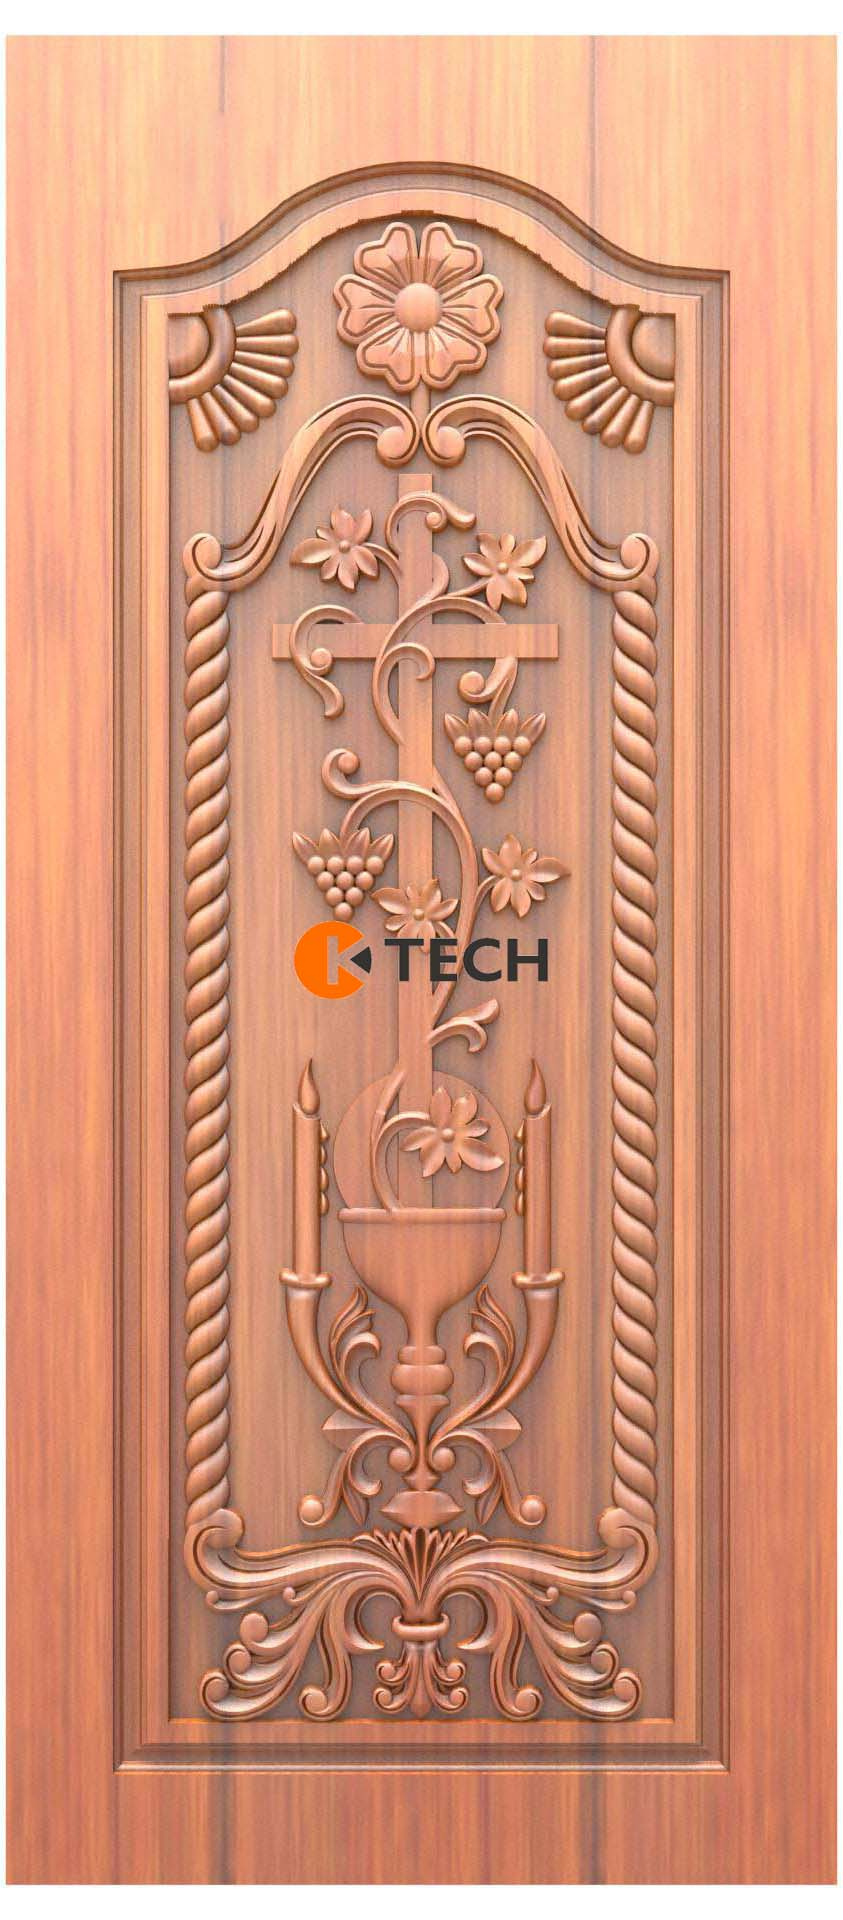 K-TECH CNC Doors Design 167